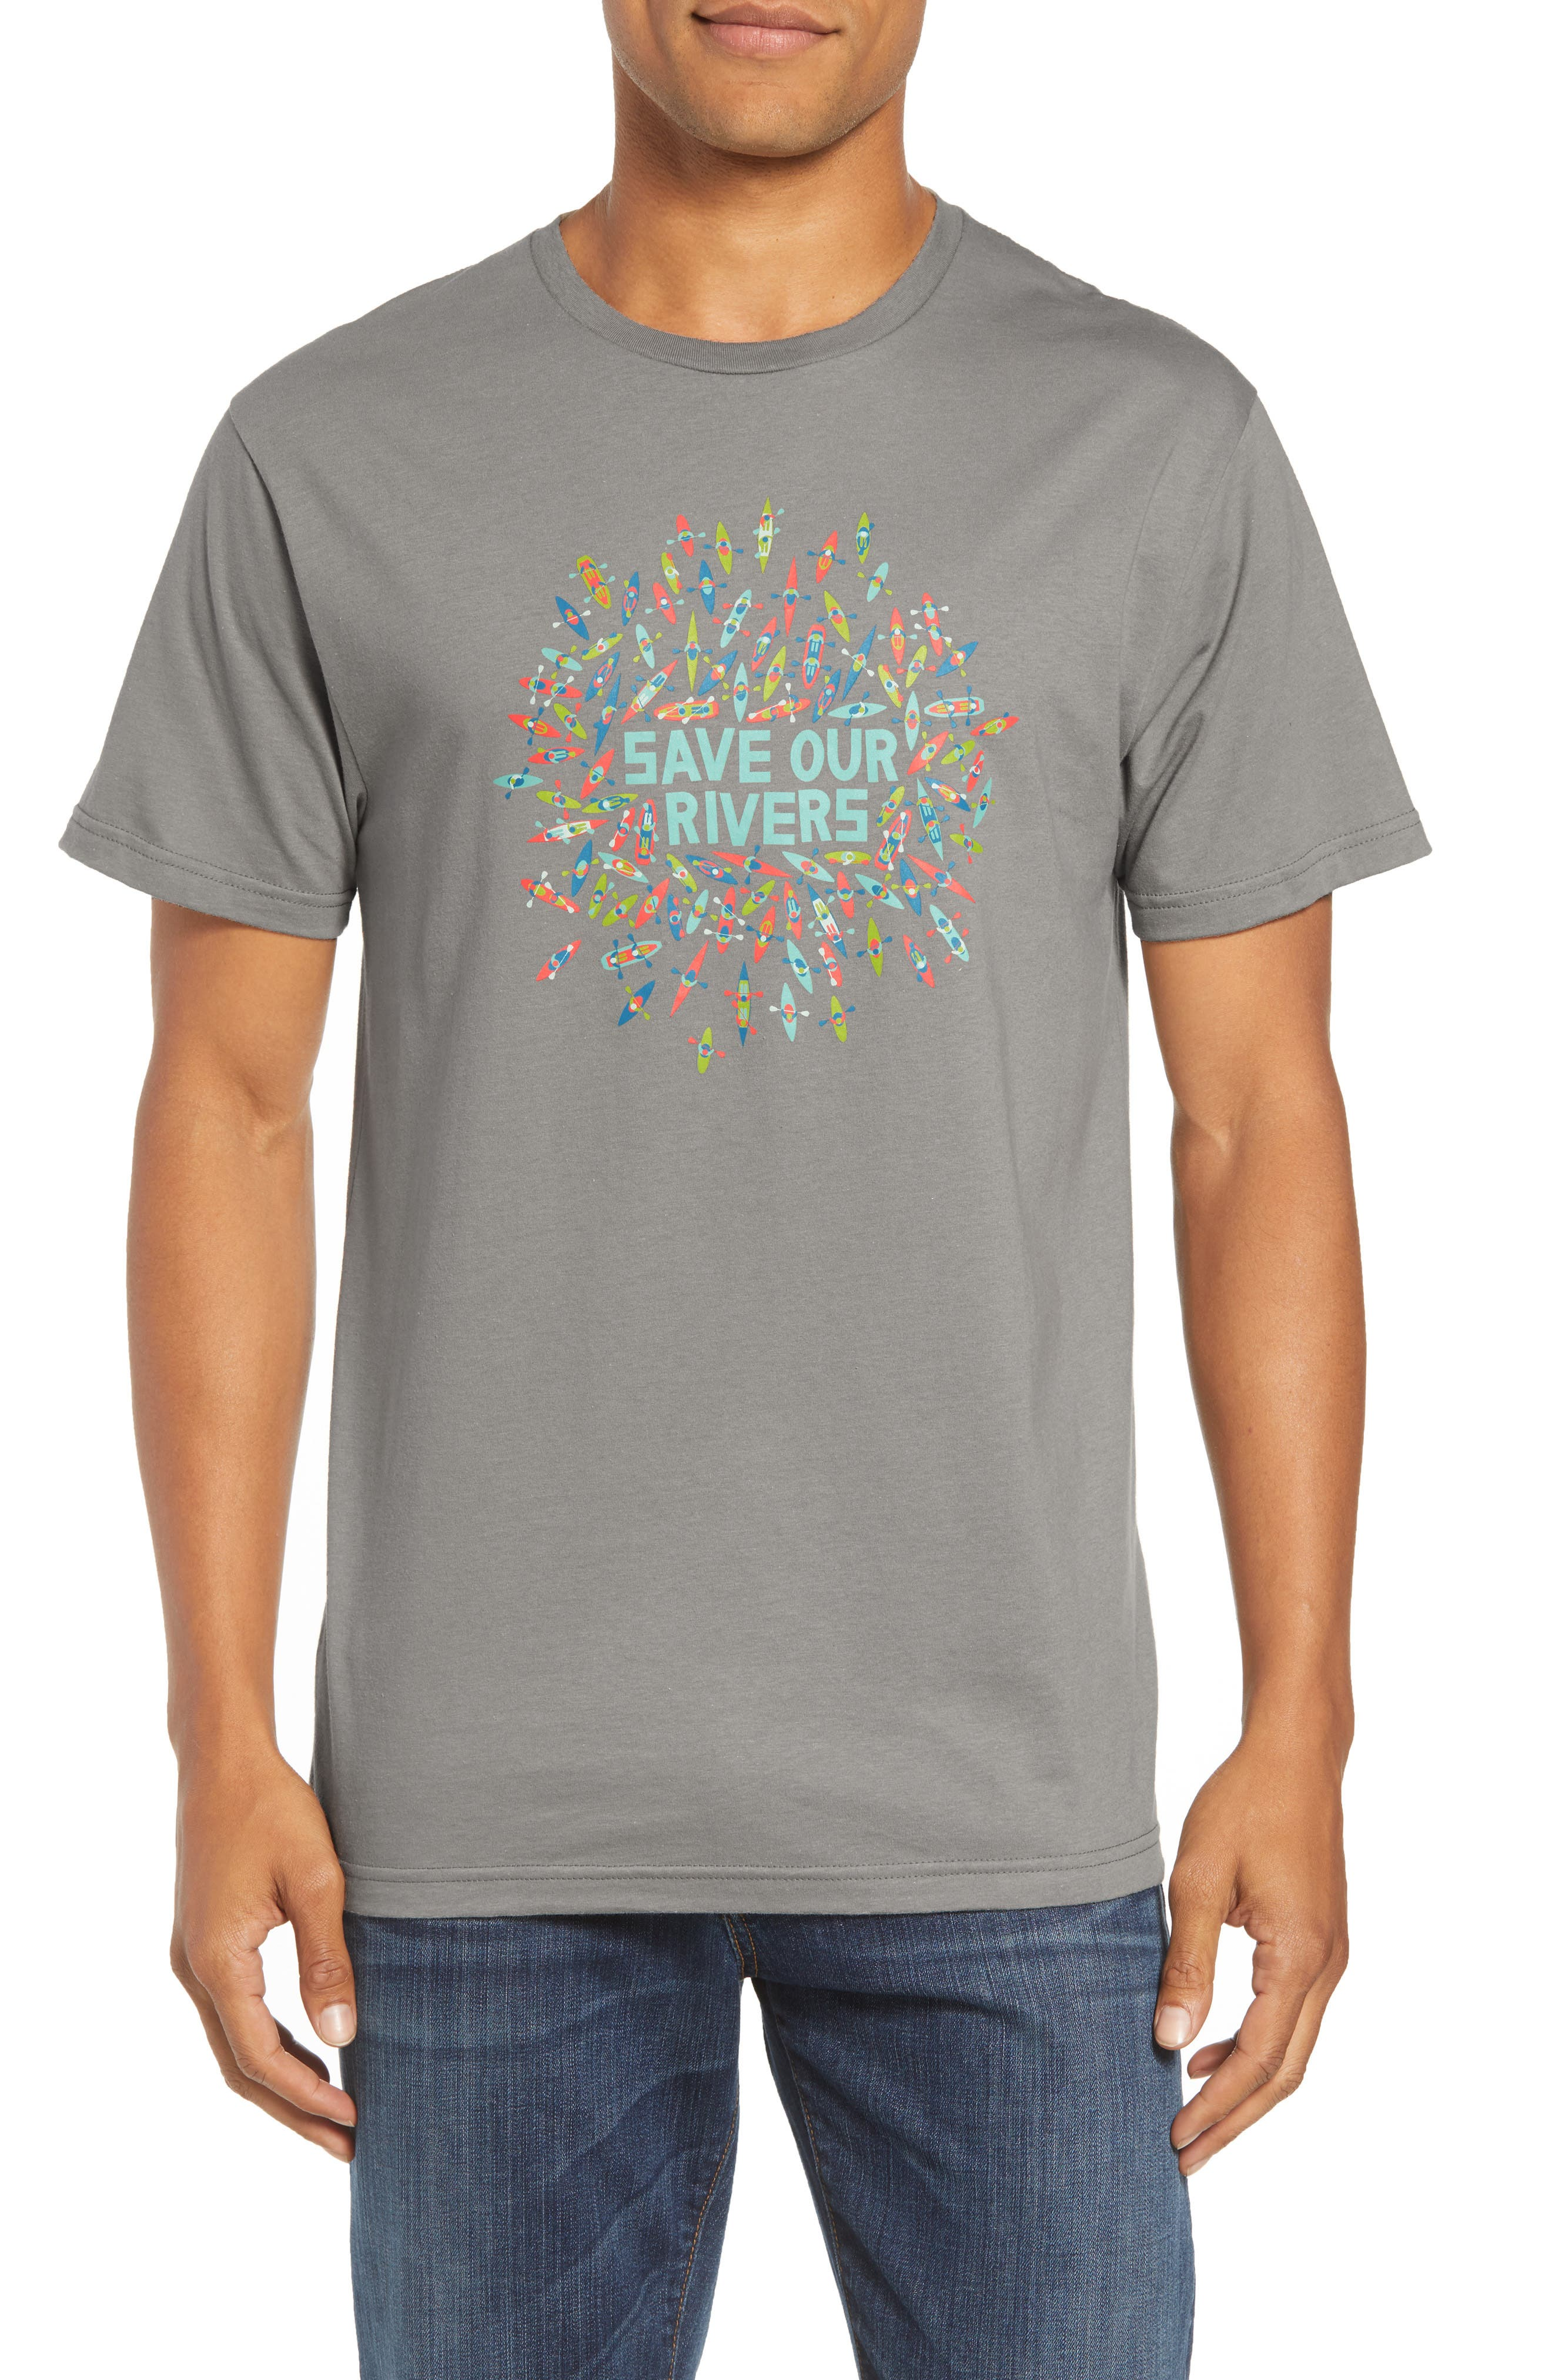 Save Our Rivers Organic Cotton Graphic T-Shirt,                         Main,                         color, FEATHER GREY